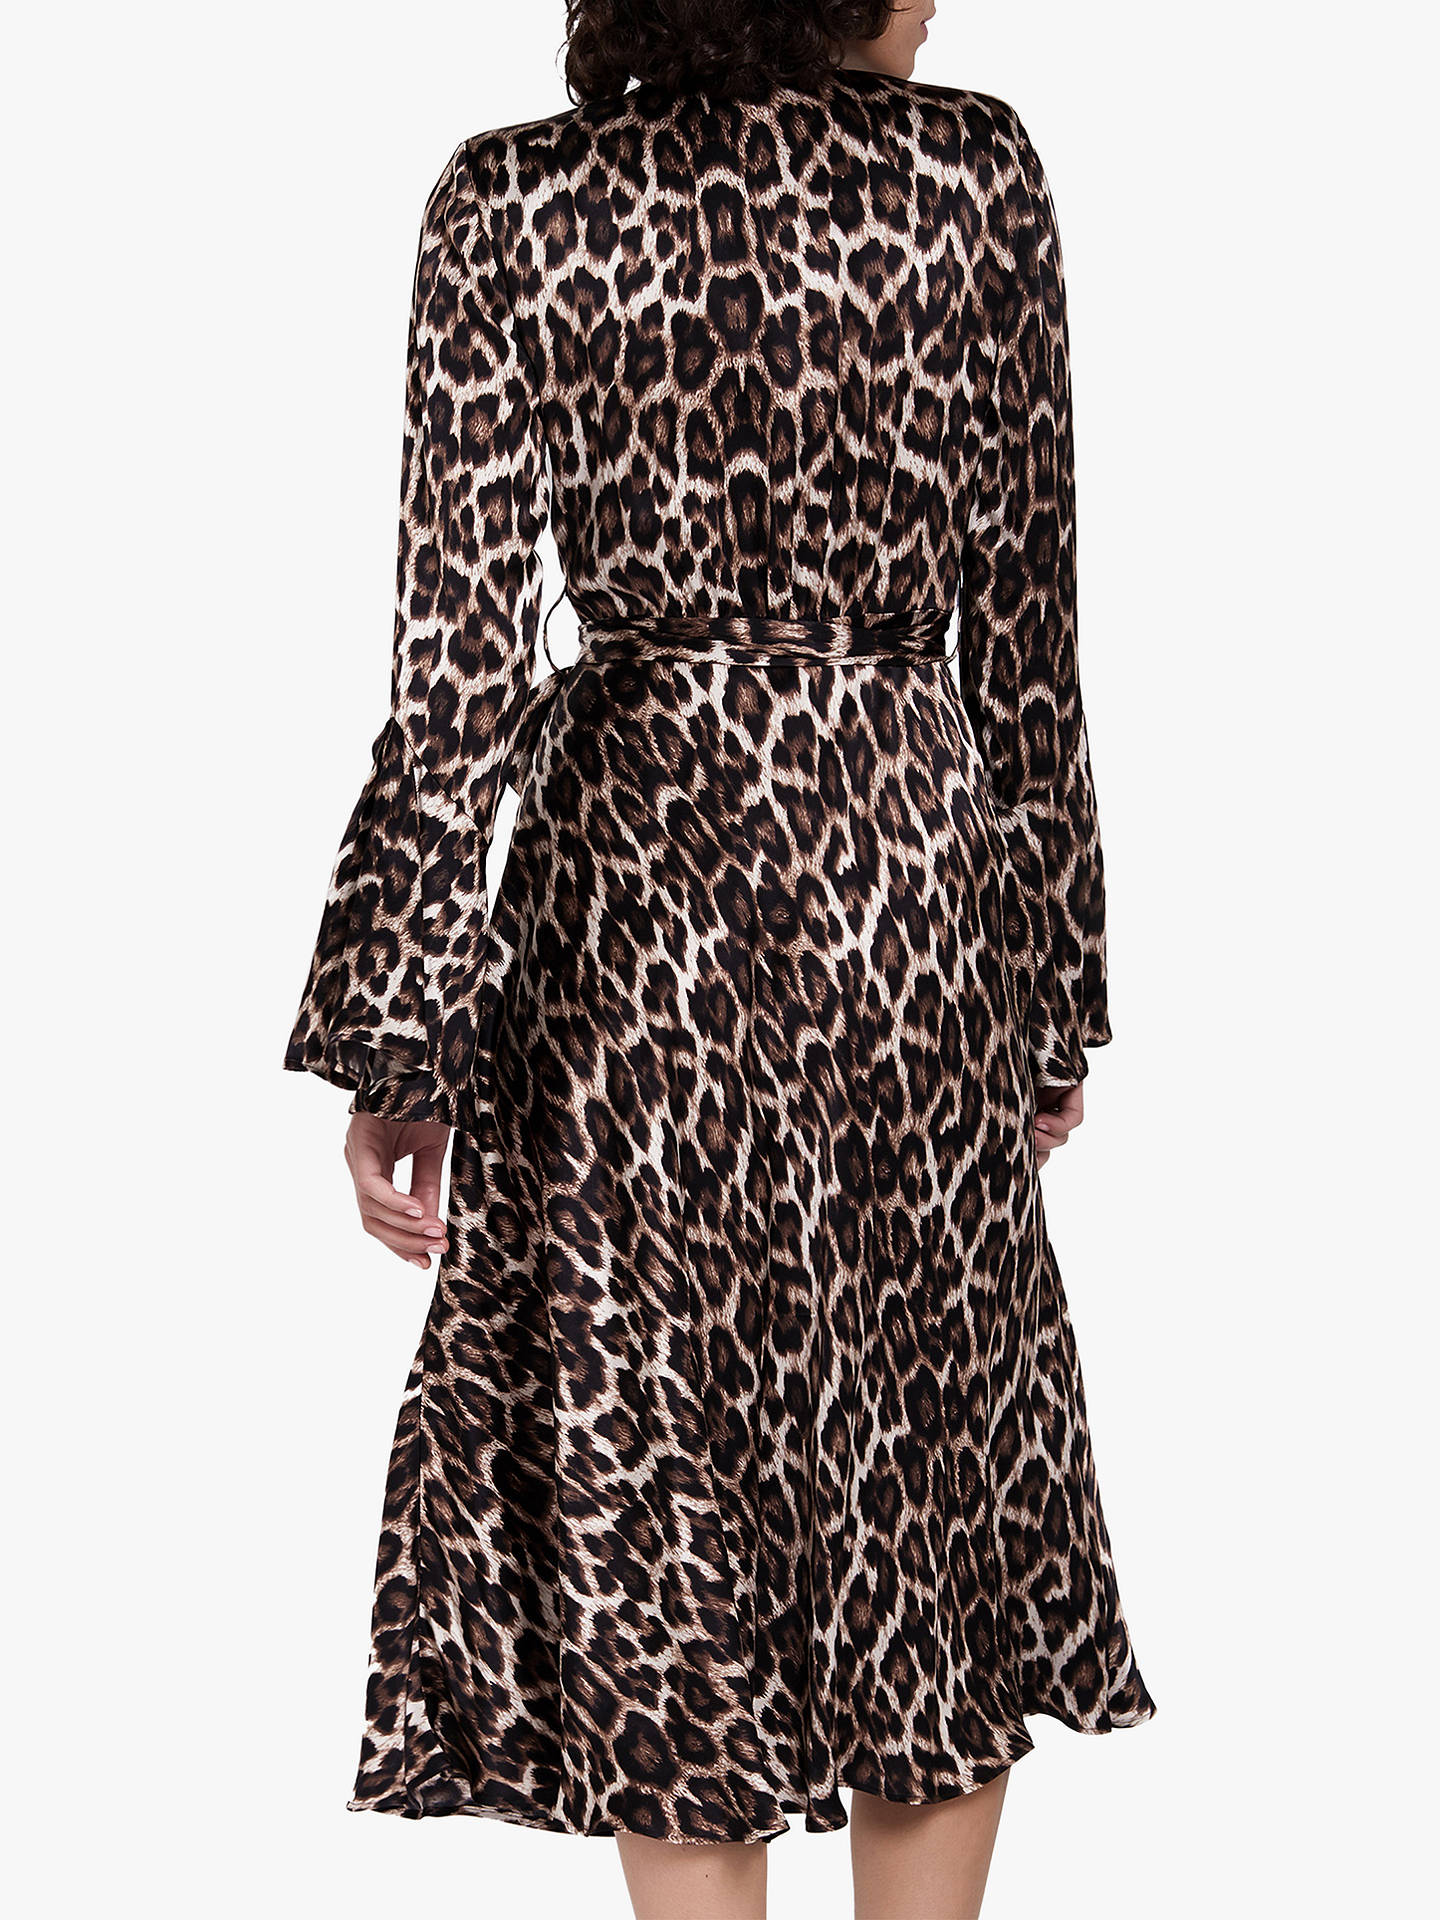 3fa8d1c48839 ... Buy Ghost Annabelle Leopard Print Midi Dress, Brown, M Online at  johnlewis.com ...